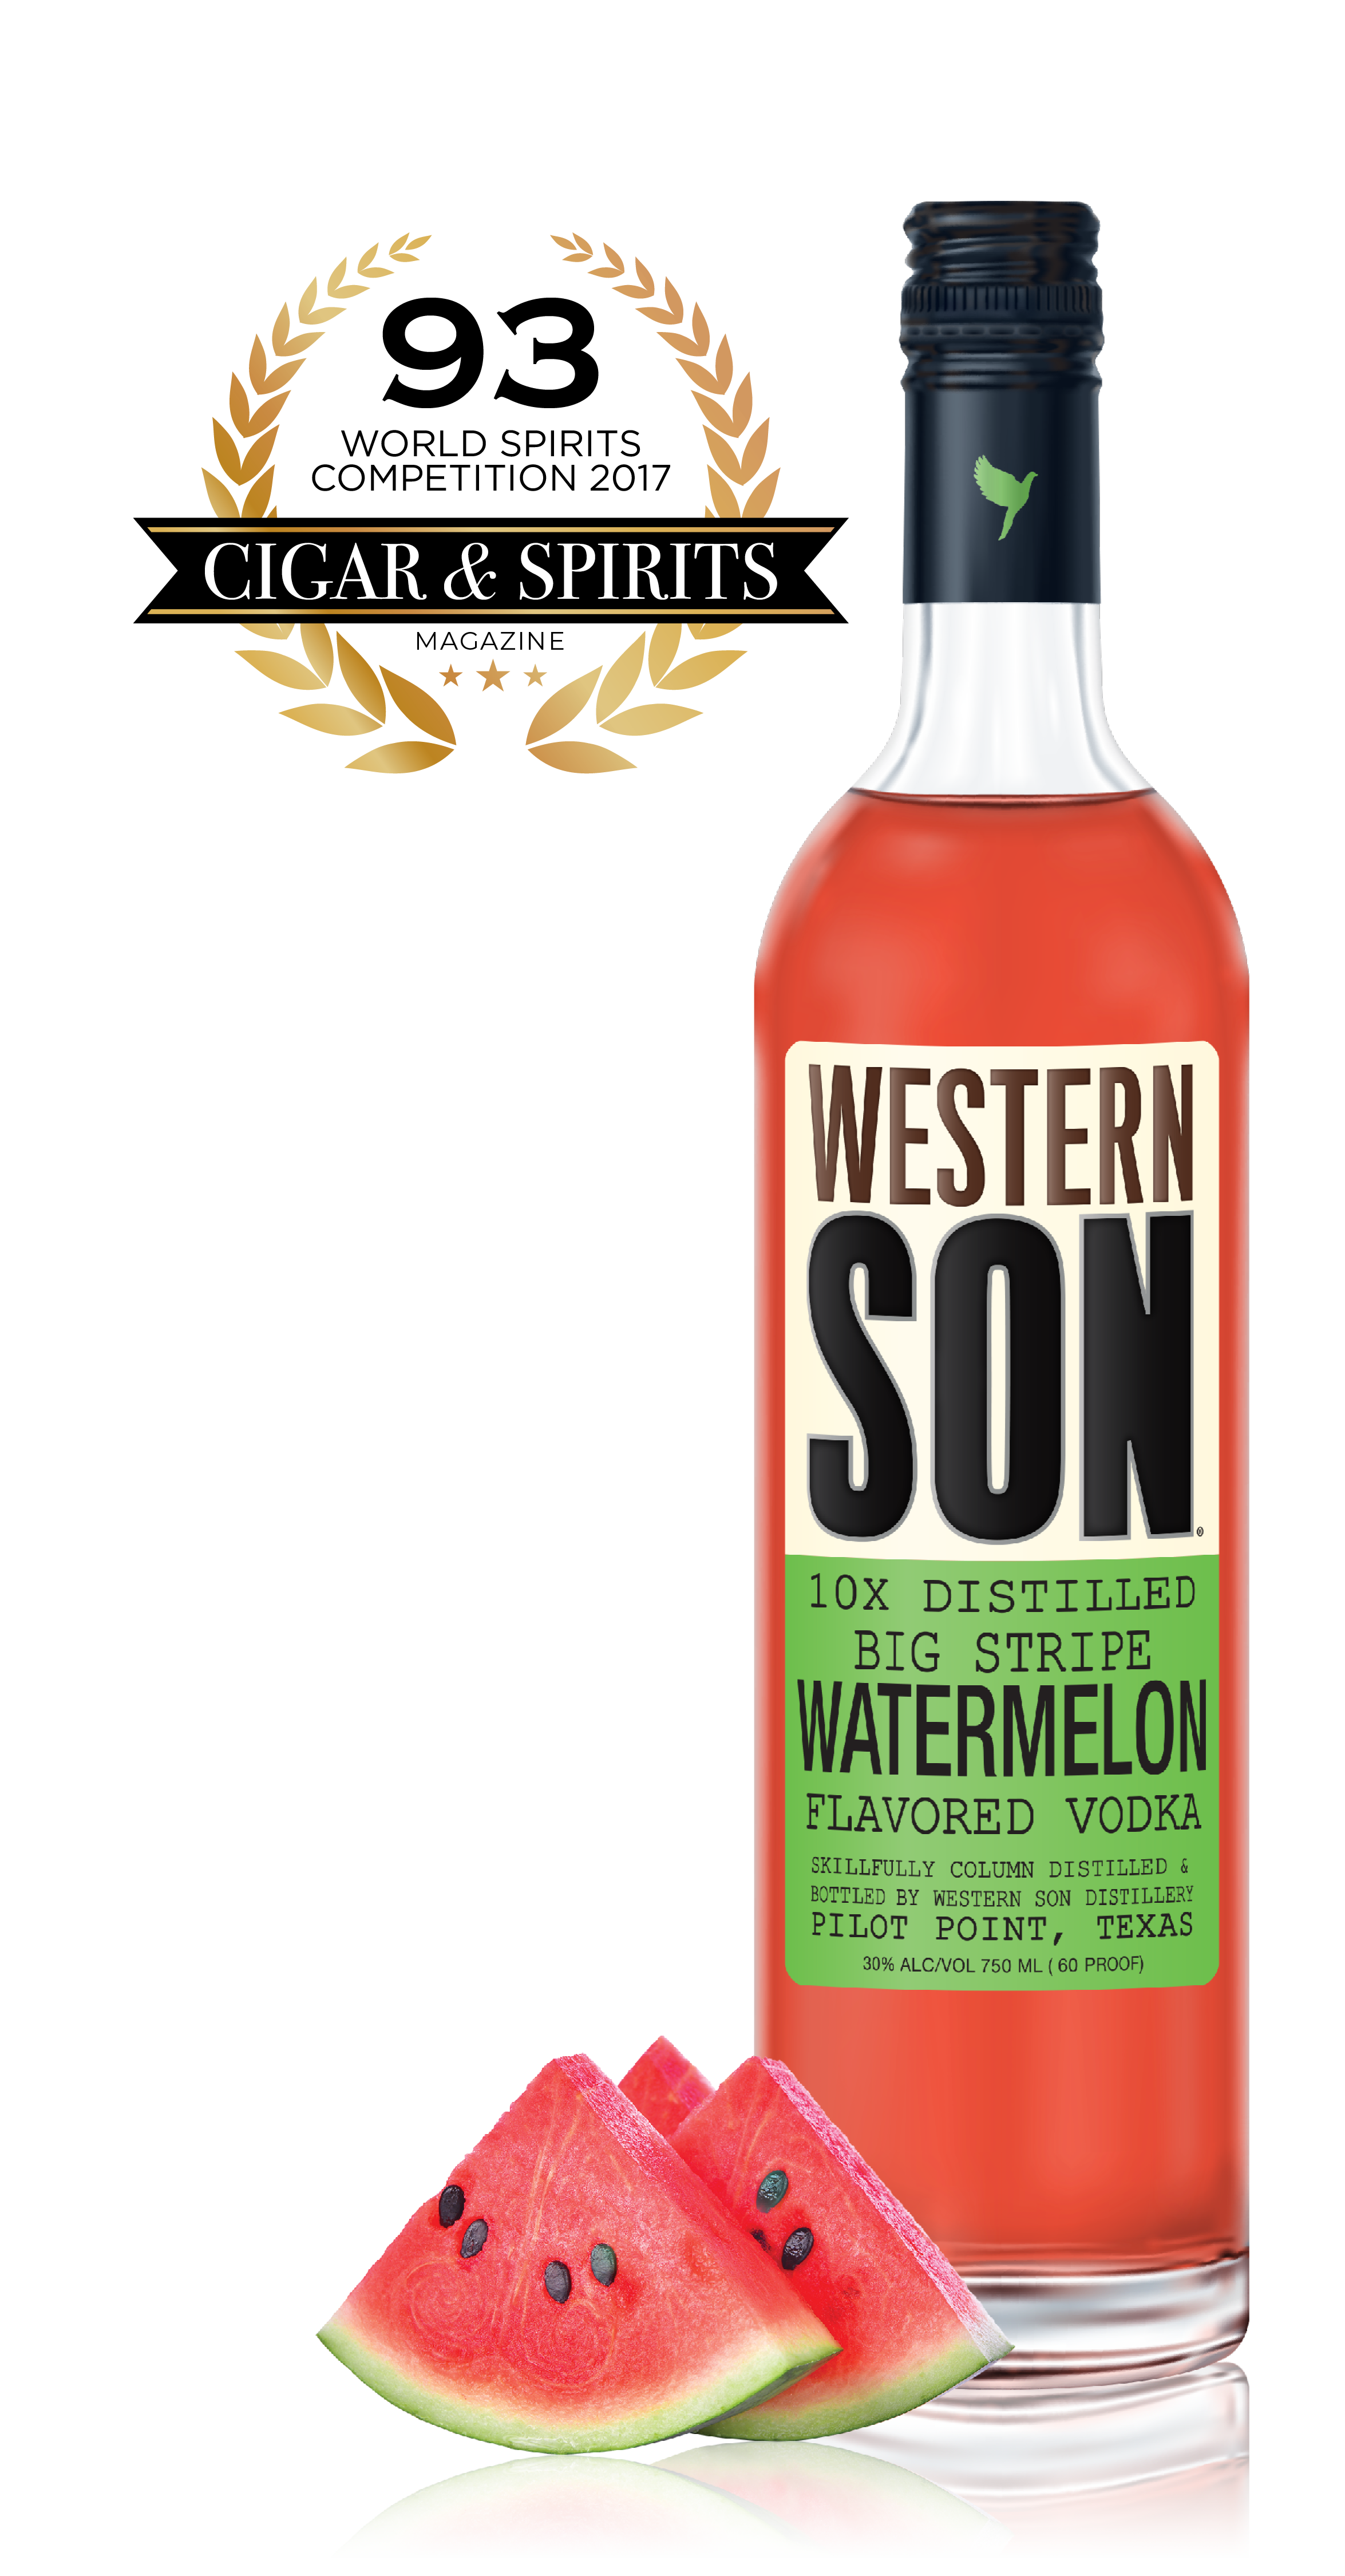 WATERMELON - Bursting flavor of semi-sweet strawberry and vine ripened melon give a long flavorful finish with subtle, sweet berry tones.Click for recipes